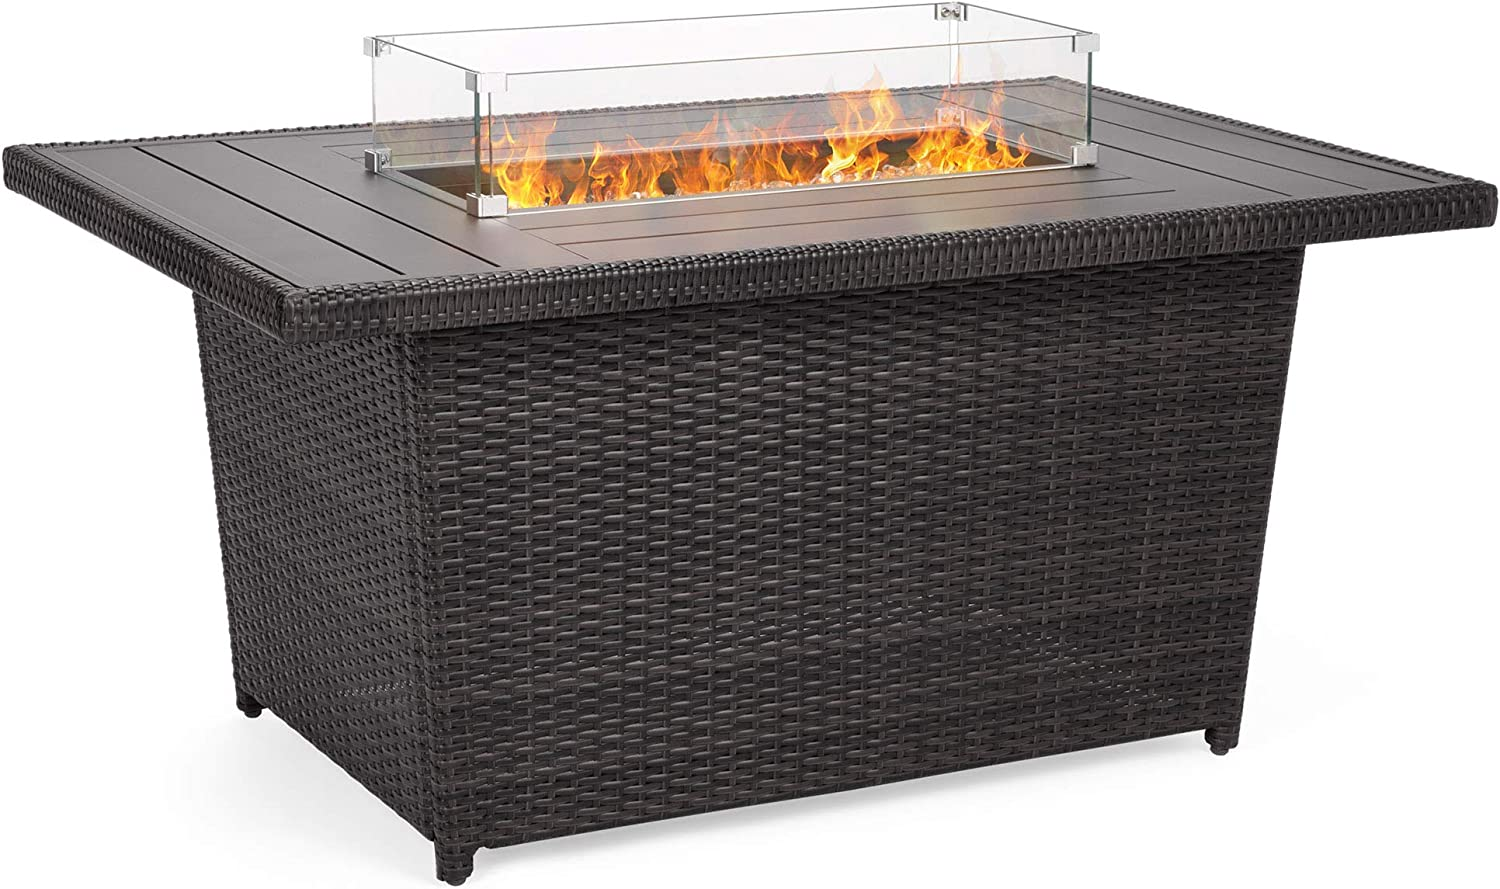 Best Choice Products 52in Outdoor Wicker Propane Fire Pit Table 50,000 BTU w Glass Wind Guard, Tank Holder, Cover -Gray